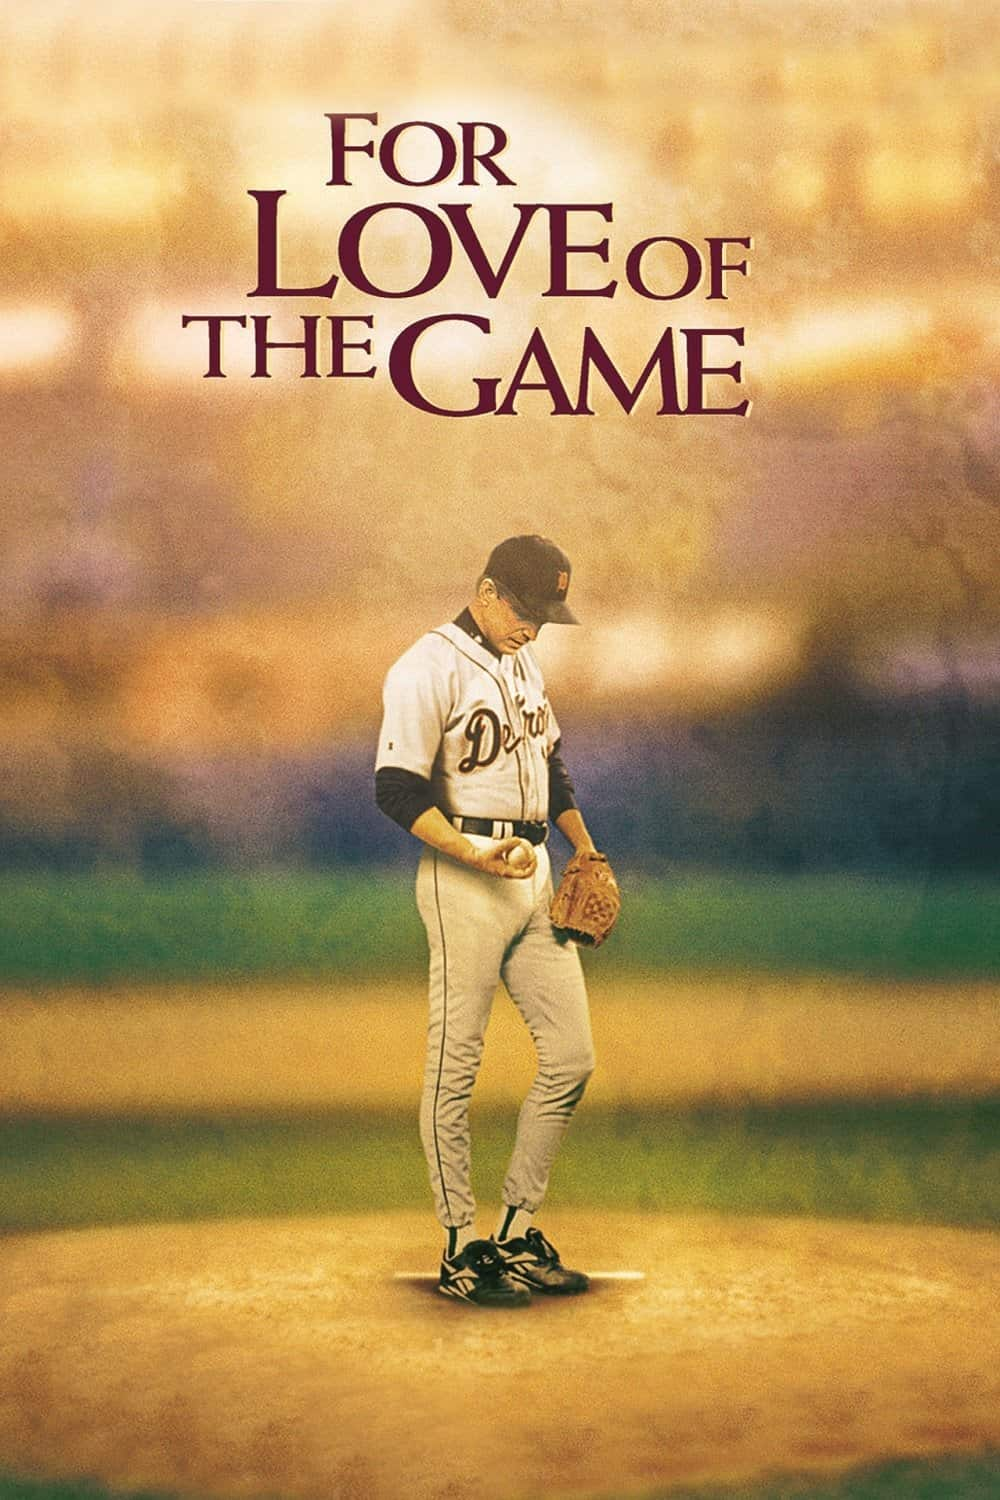 For Love of the Game, 1999